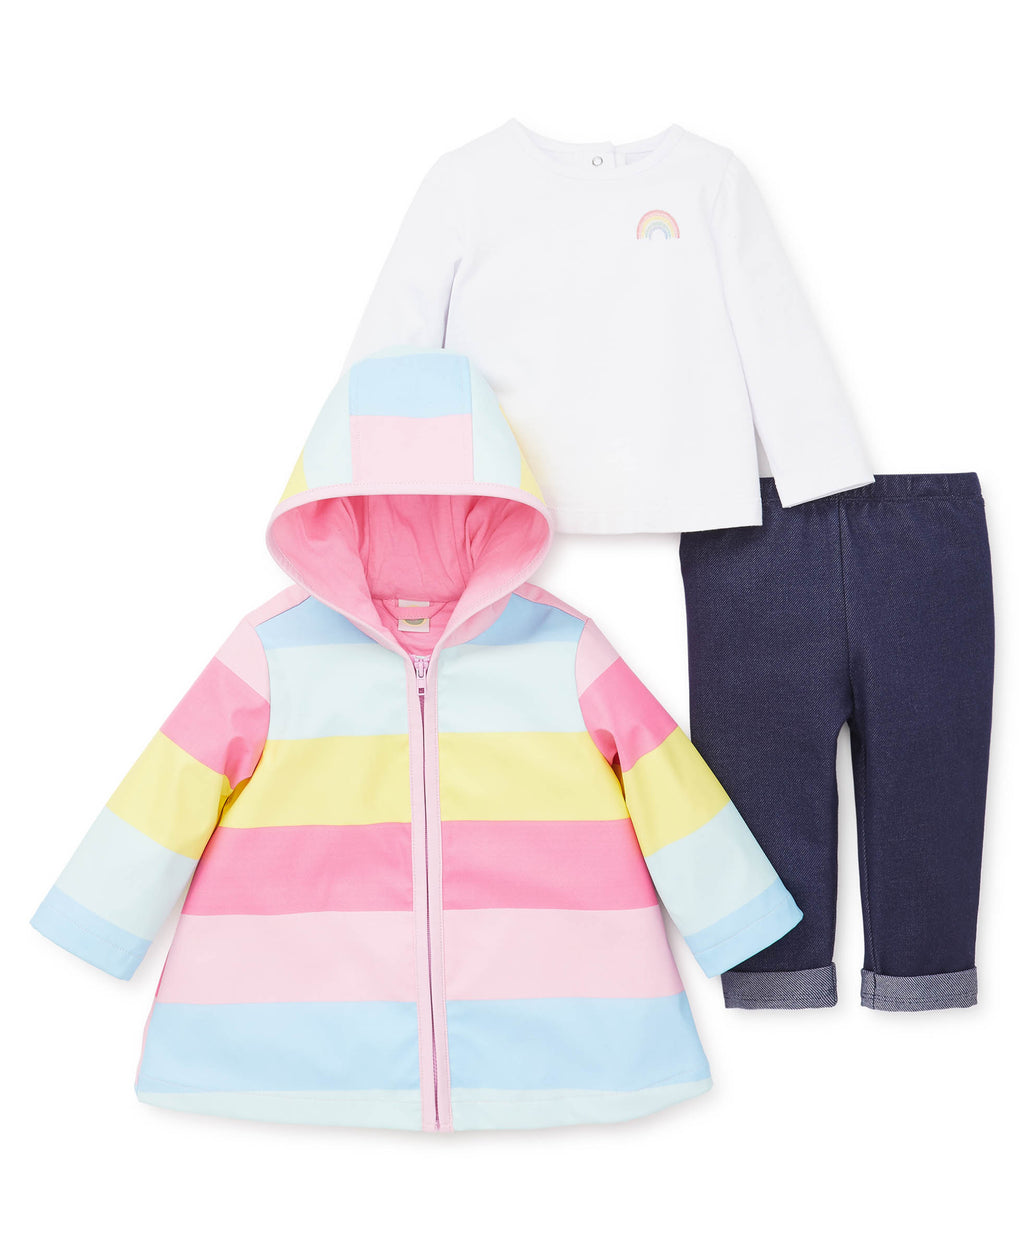 Rainbow Jacket Set